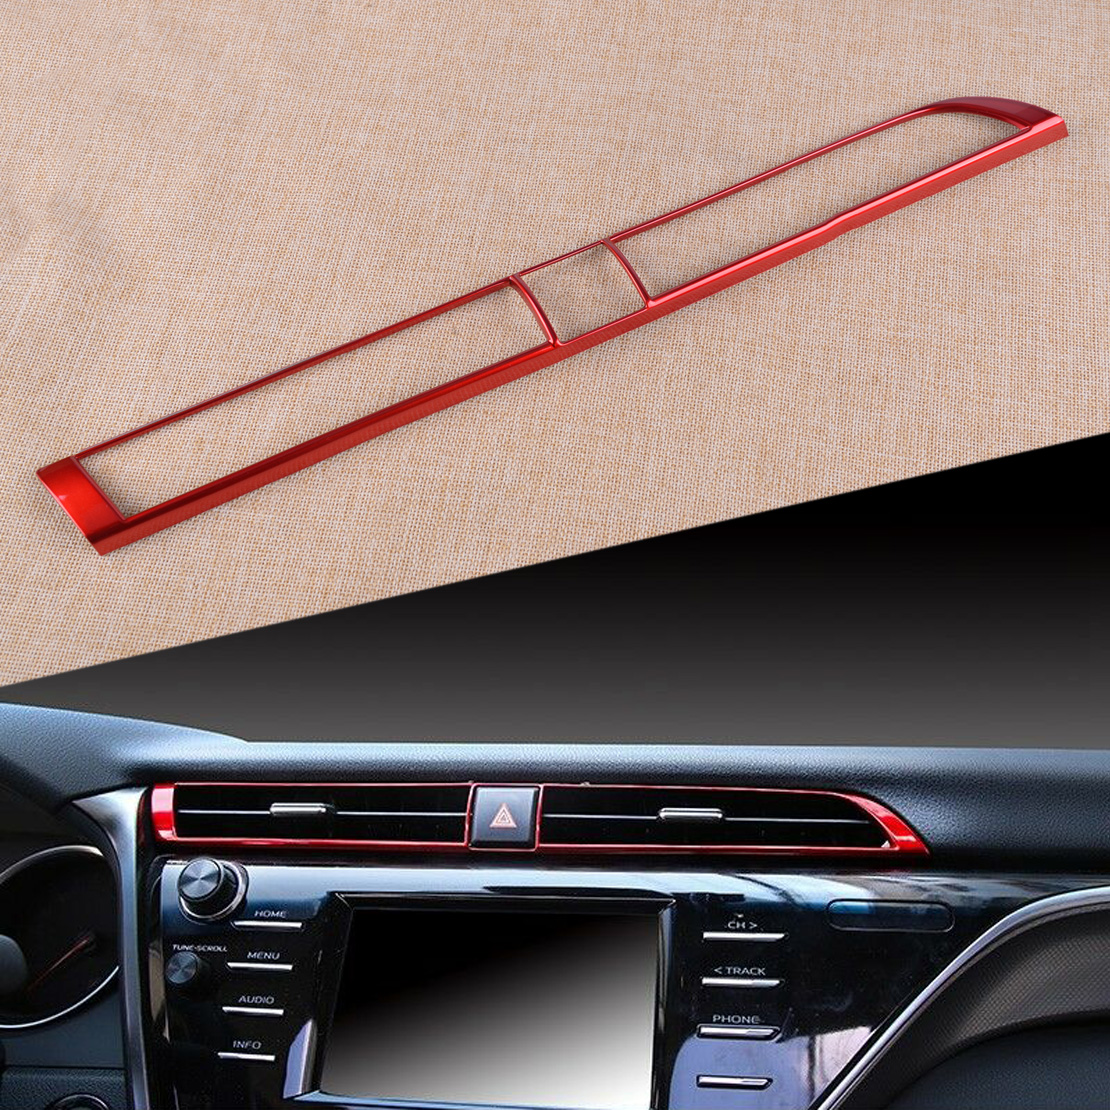 CITALL Red ABS Car Console Central Middle Air Vent Outlet Cover Trim Frame Fit For Toyota Camry 2018 2019